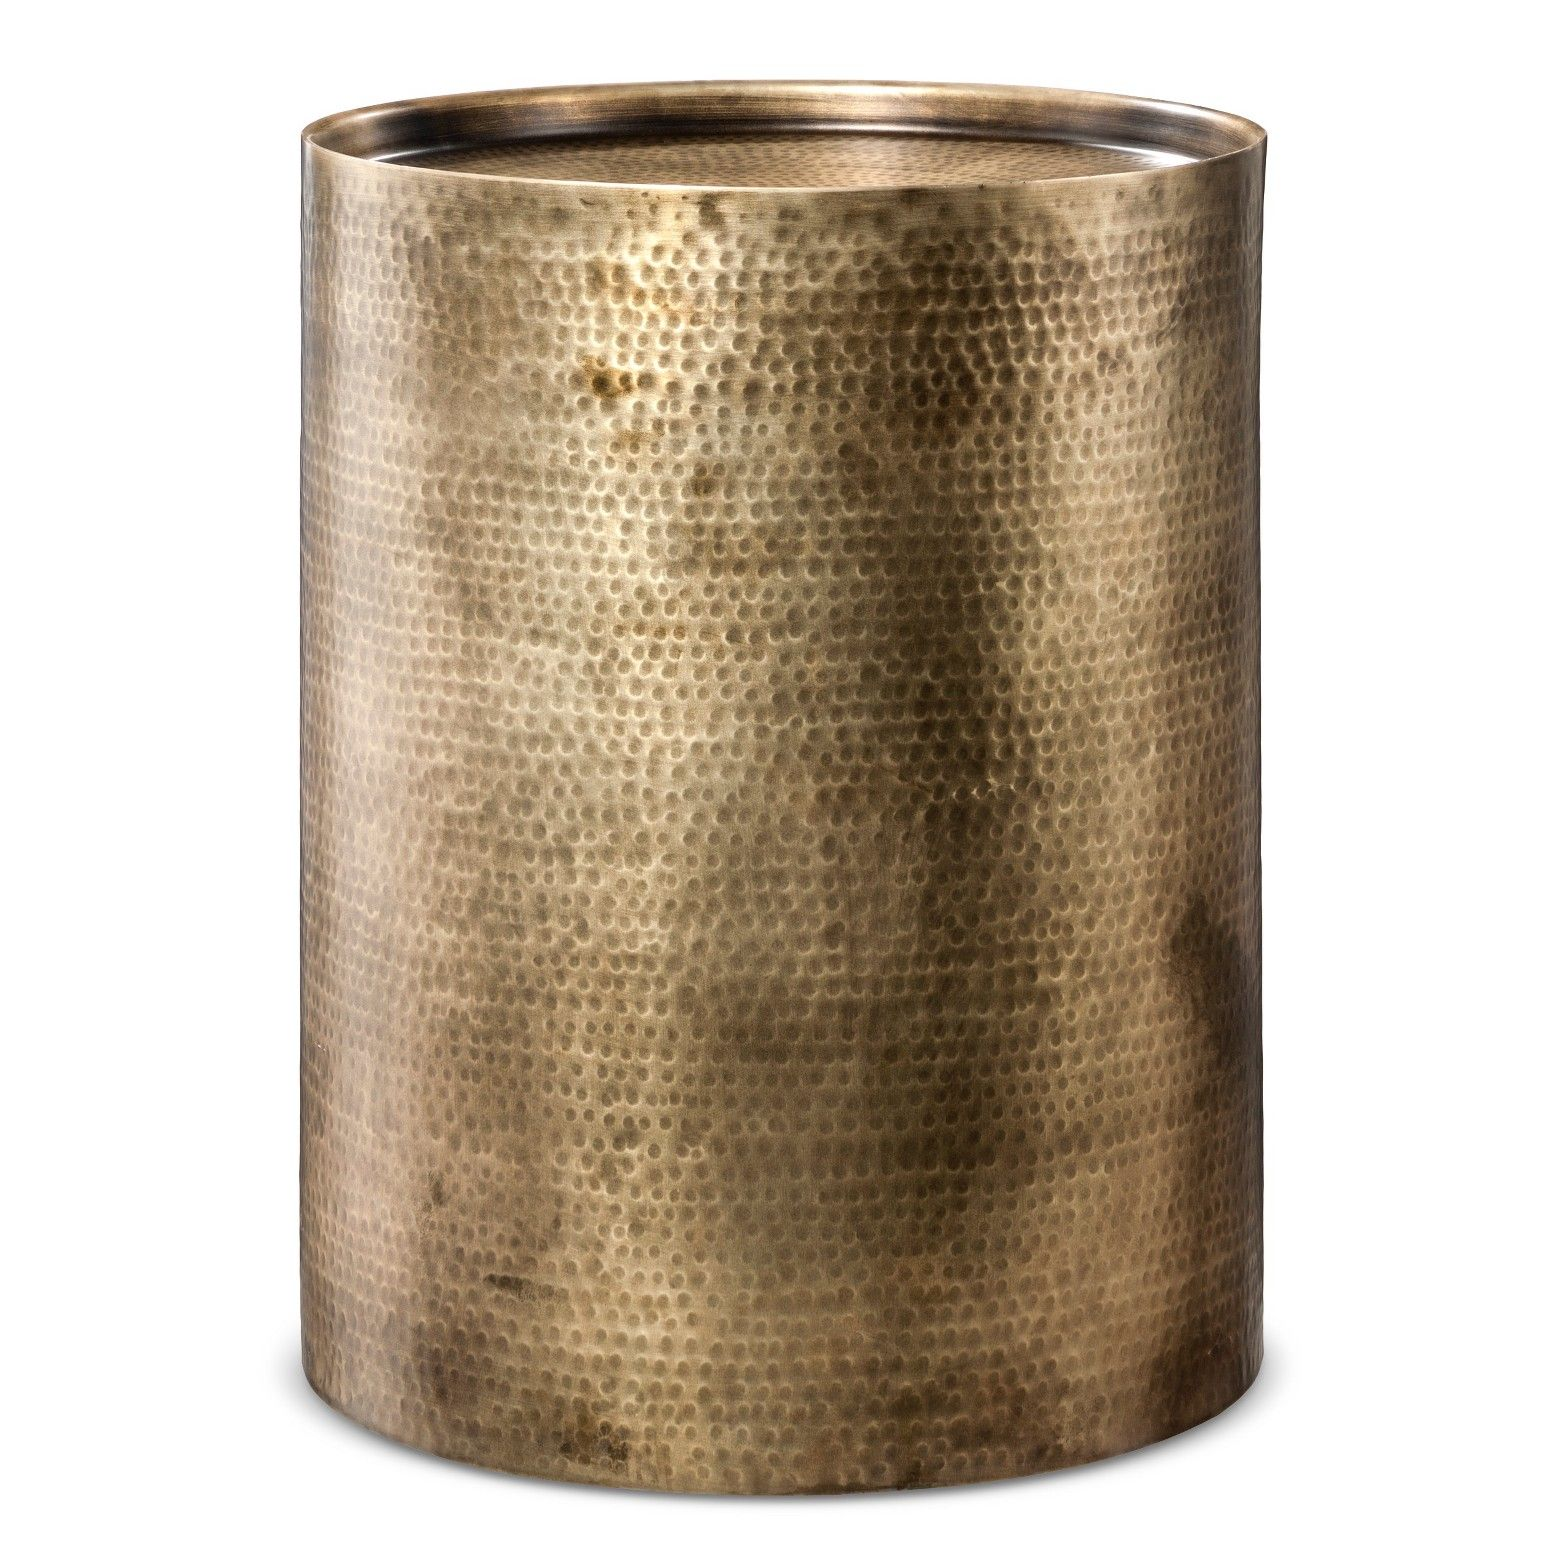 bull metal accent table with polished silver finishbrbull nail manila cylinder drum brass hammered for textured feelbrbrthe granby cordless battery operated lamps garage door